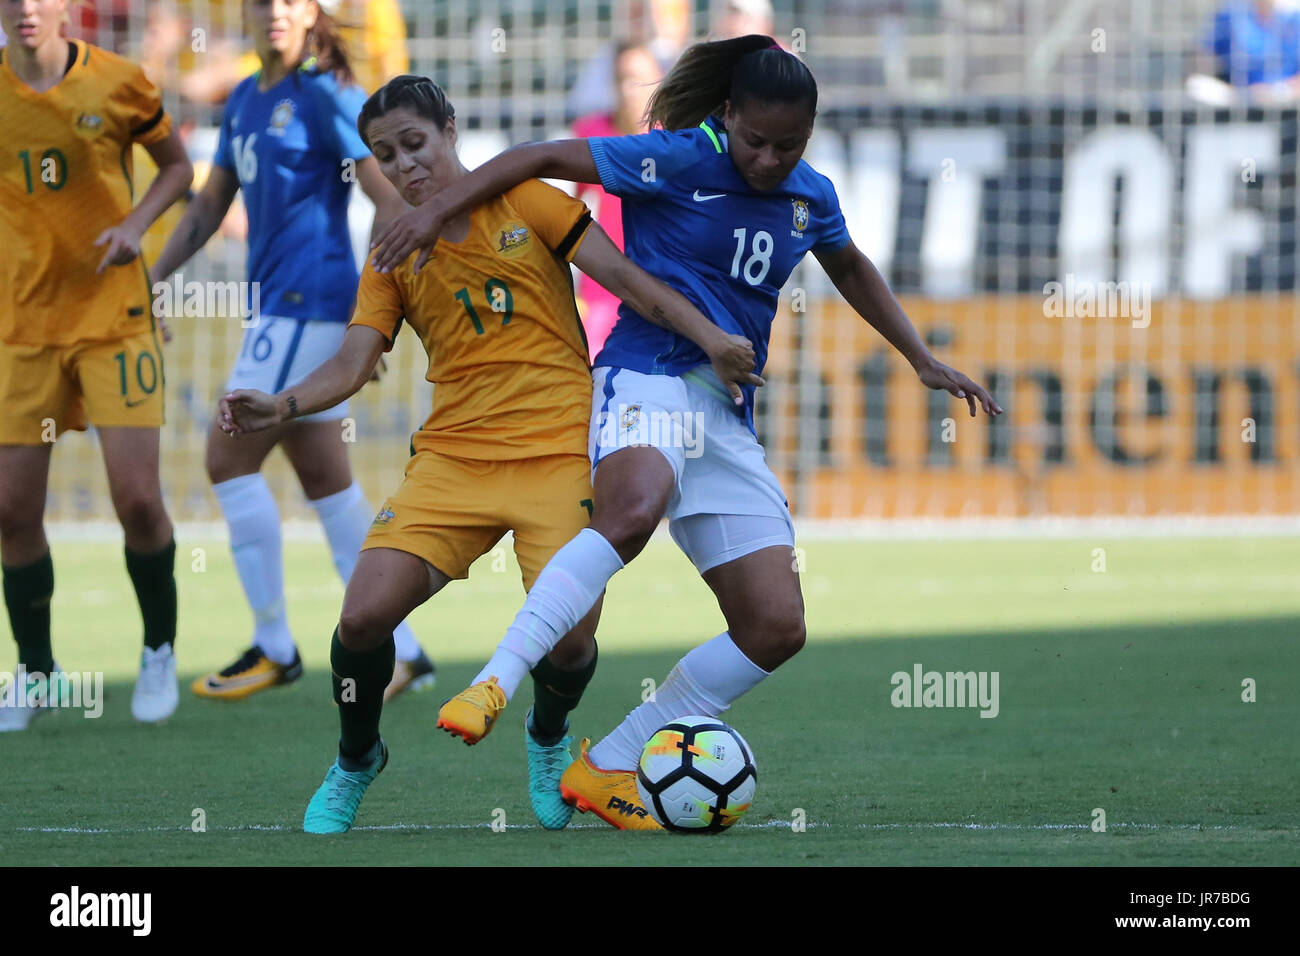 August 3, 2017: Brazil midfielder Fran (18) and Australia midfielder Katrina Gorry (19) both work to gain possession of the ball in the game between the Australia and Brazil, Tournament of Nations, Stub Hub Center in Carson, CA. USA. Photographer: Peter Joneleit - Stock Image